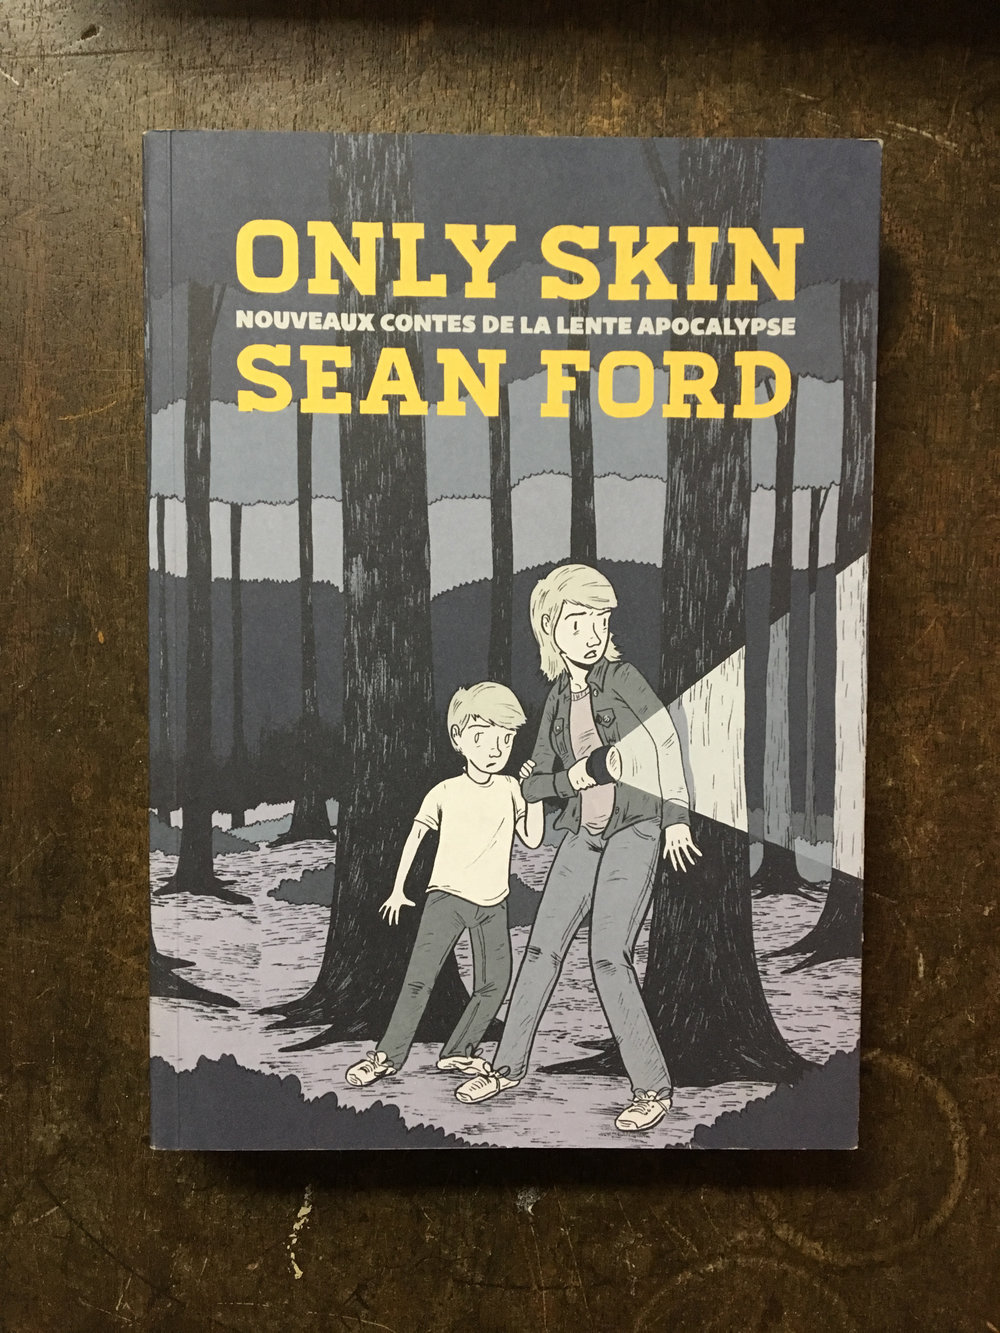 Only Skin - Editions Rackham, 2013